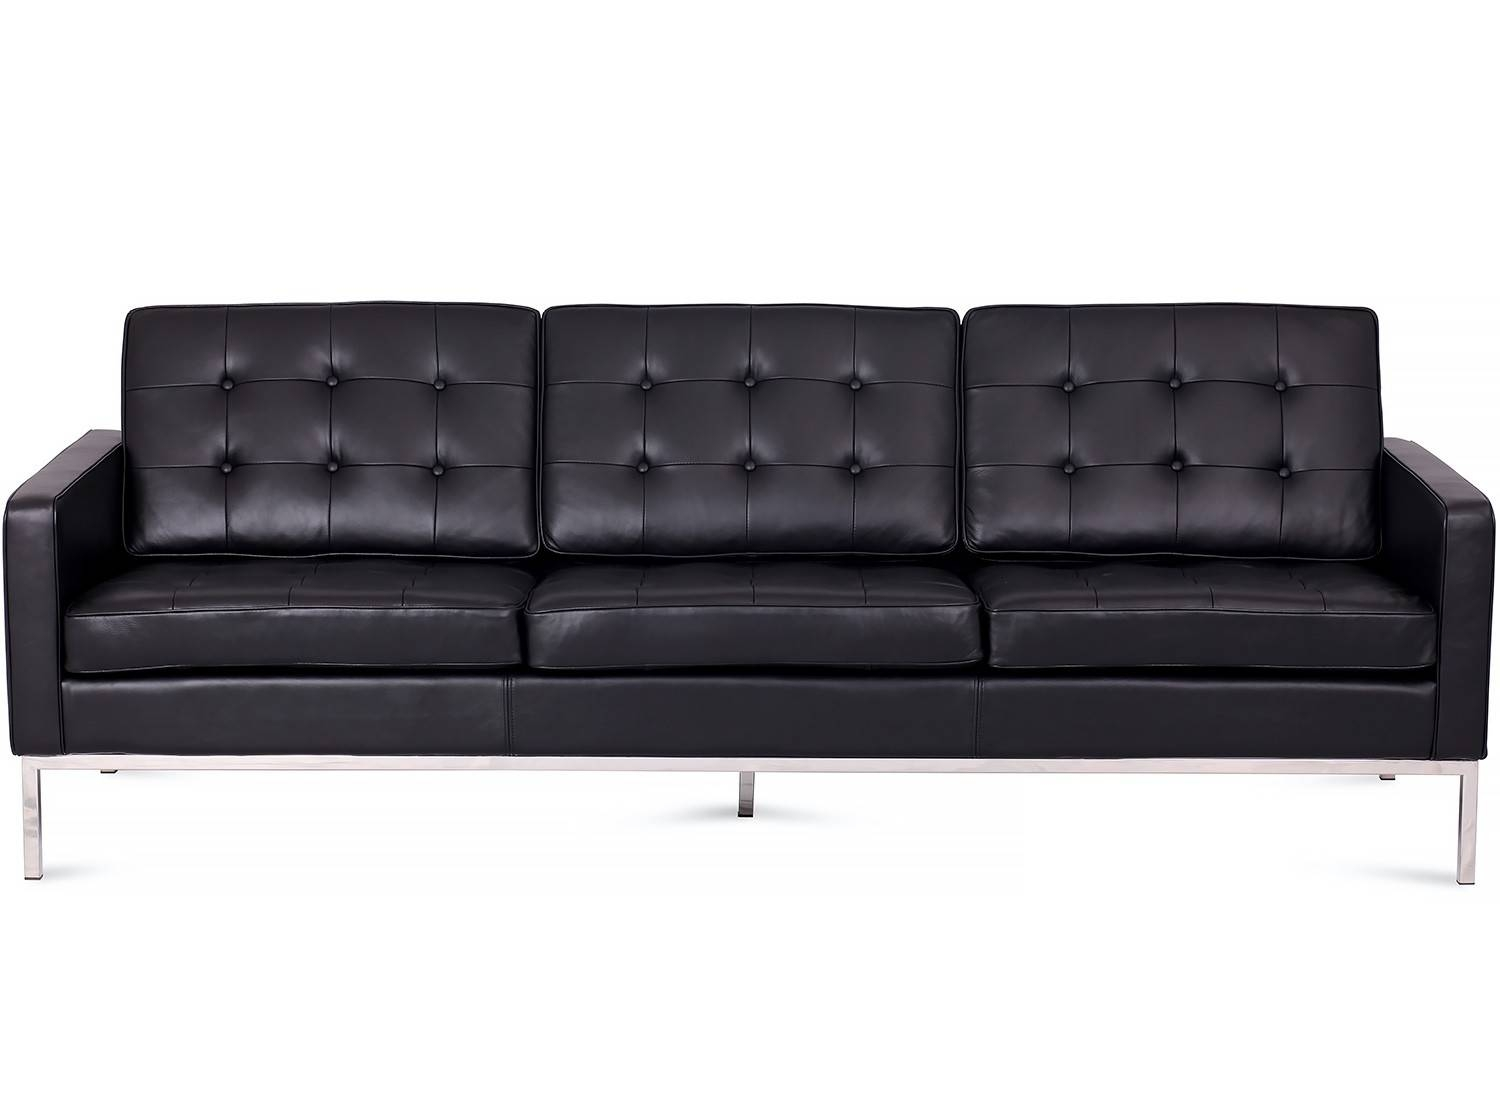 Florence Knoll Sofa 3 Seater Leather (Platinum Replica) throughout Florence Knoll 3 Seater Sofas (Image 15 of 30)